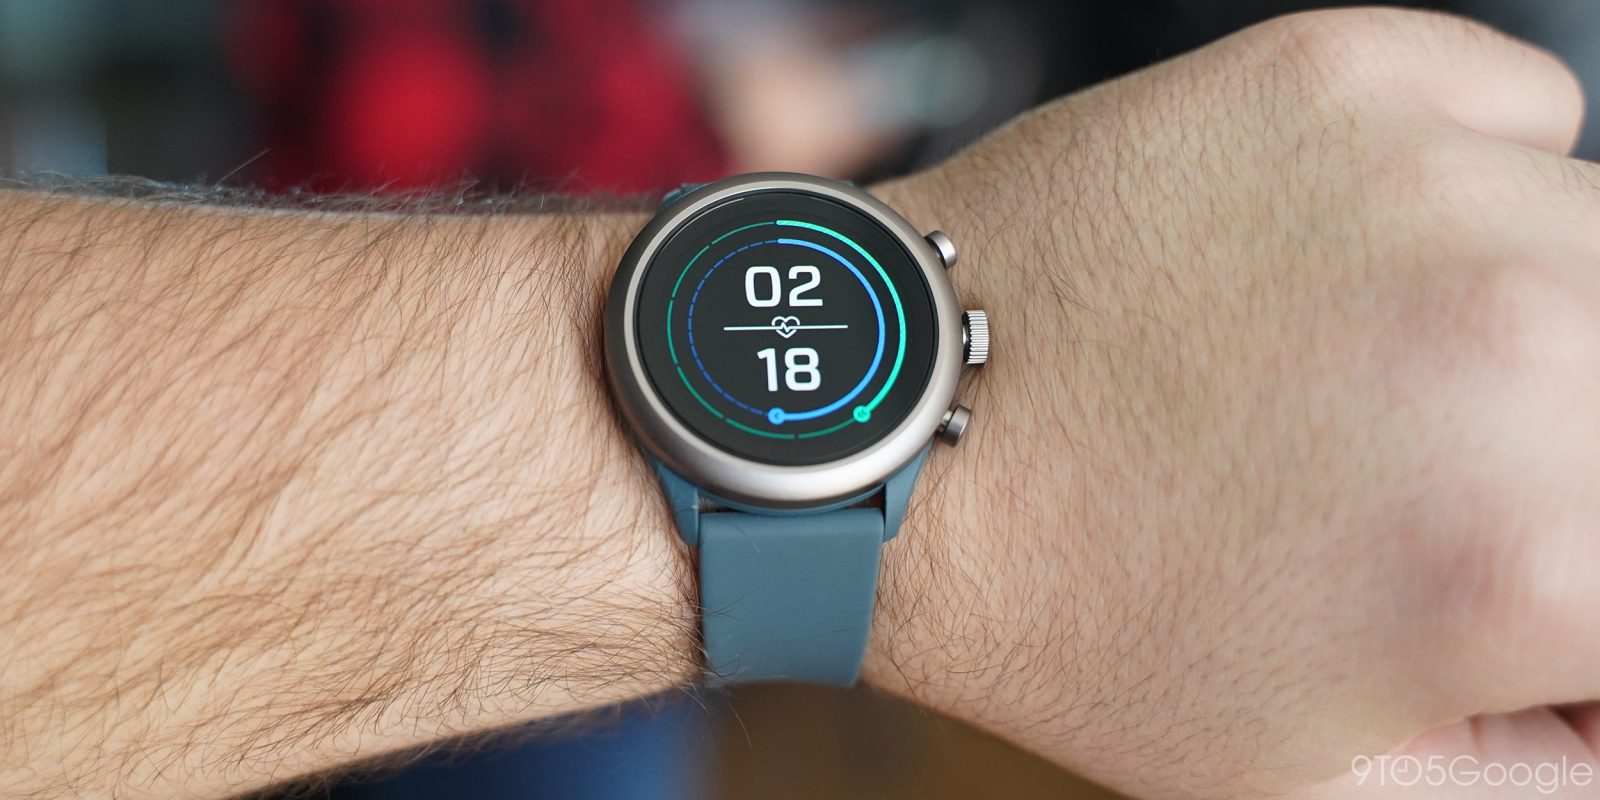 561c96e5f Fossil Sport Review: The best Wear OS watch for most people [Video ...